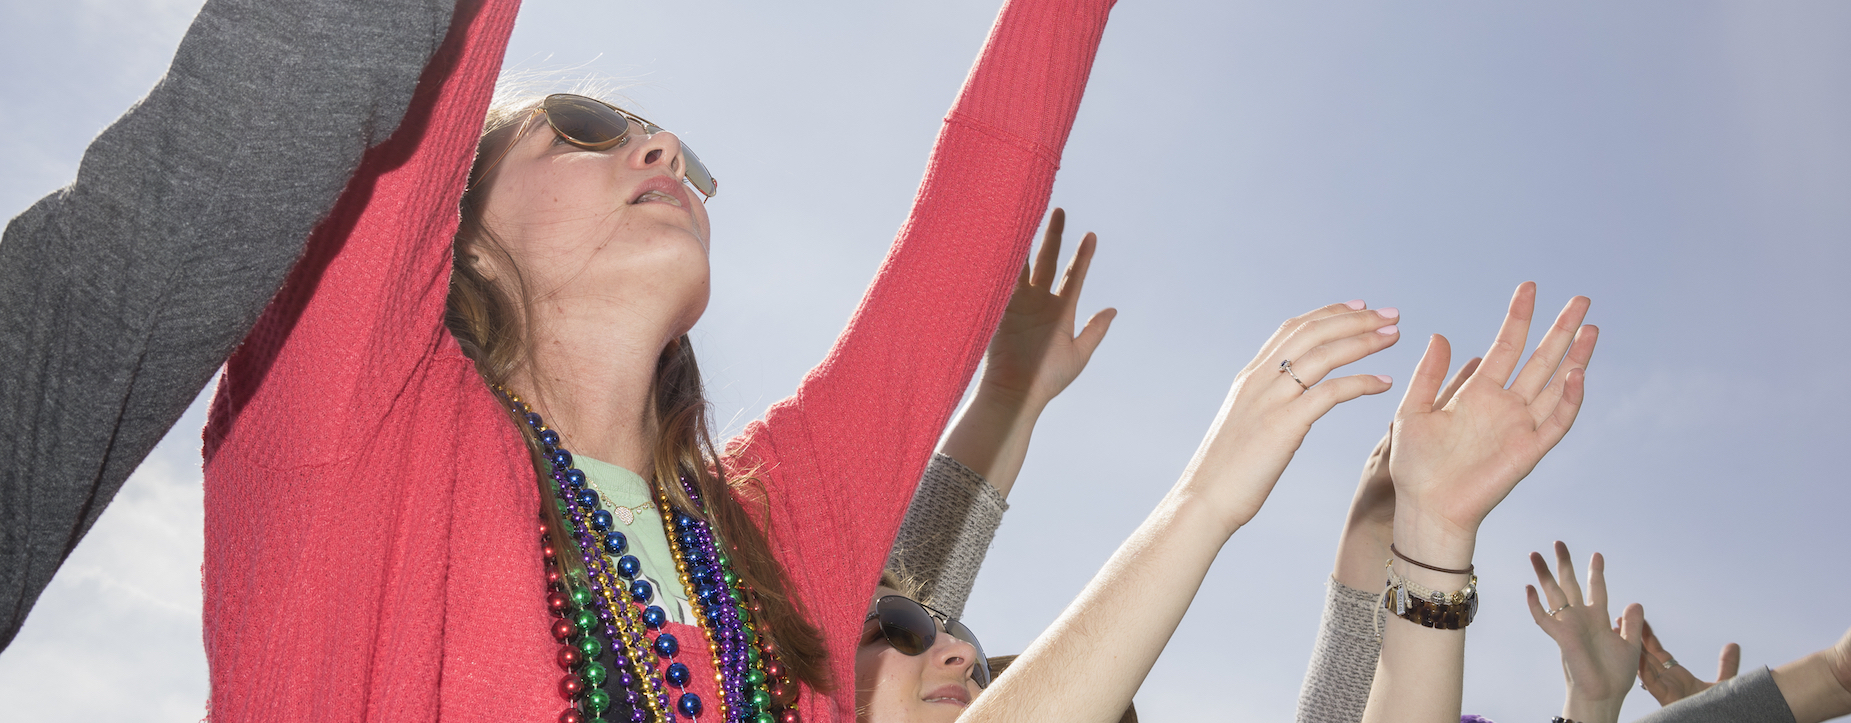 Gulf Coast Mardi Gras: Tammy Mercure at the 85th Pass Parade